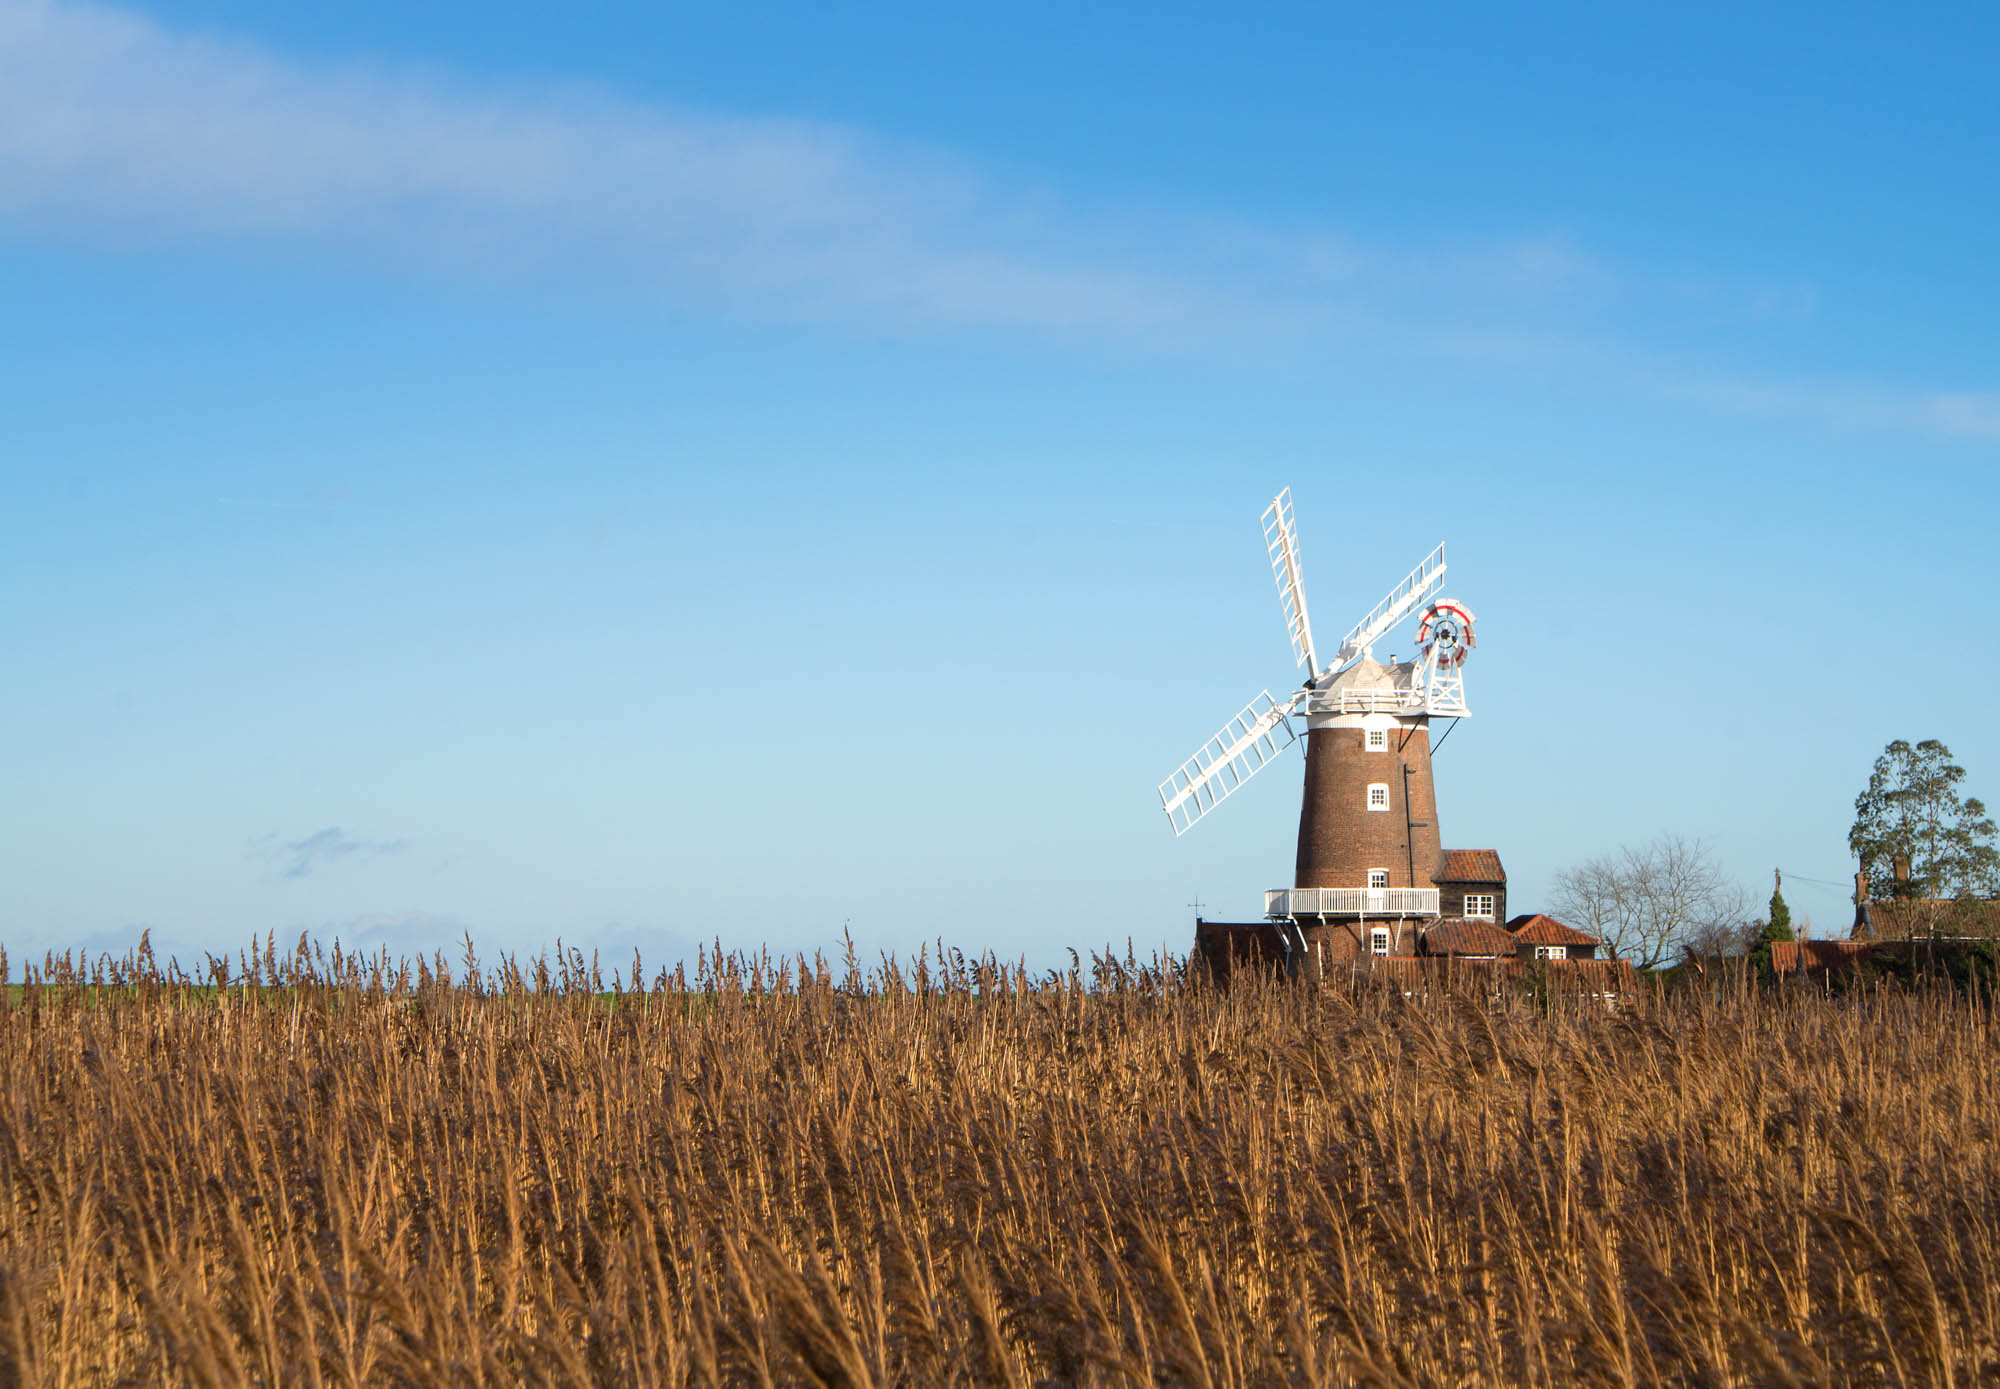 A view over the reeds to the windmill at Cley Next The Sea in Norfolk.